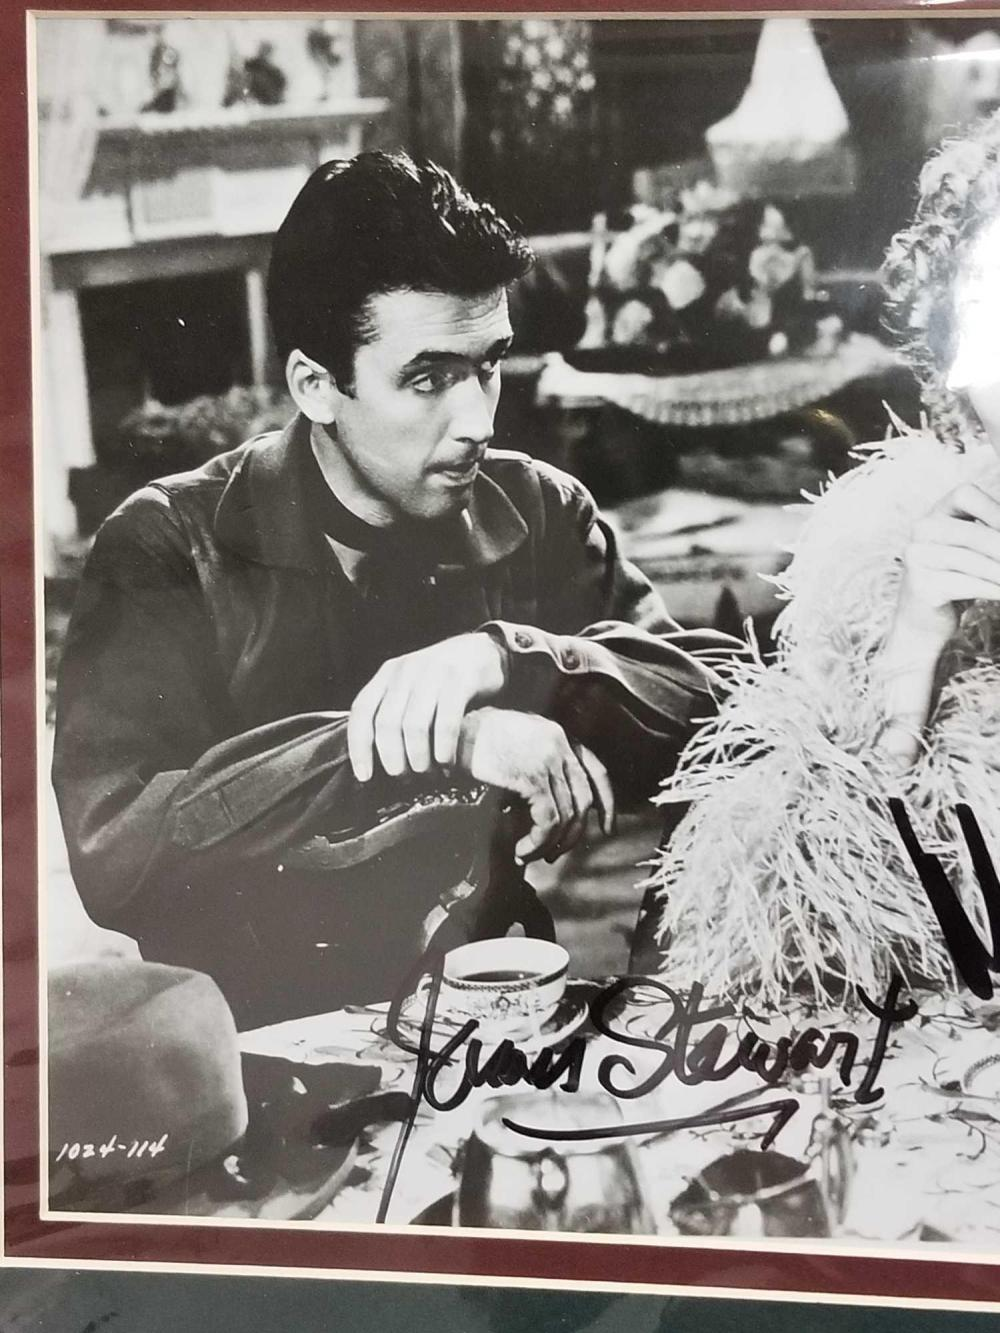 Lot 111: MARLENA DIETRICH & JAMES STEWART BLACK & WHITE SIGNED MOVIE STILL PHOTO